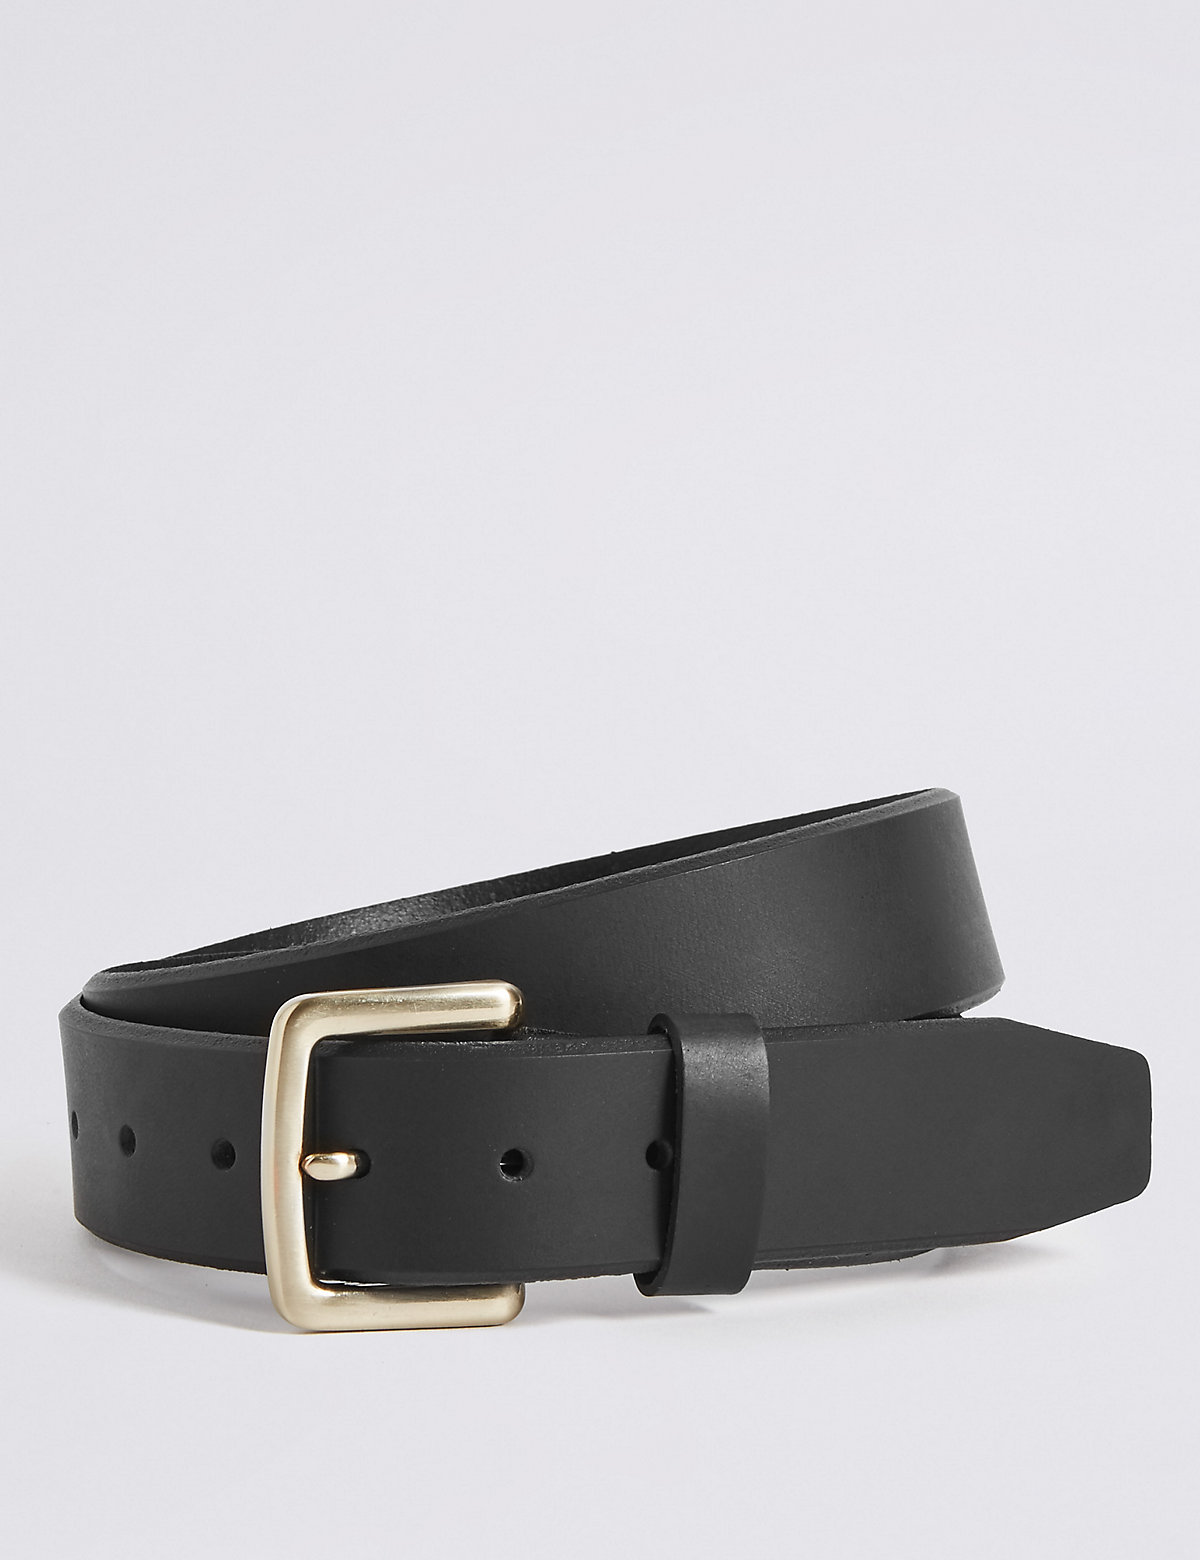 Marks & Spencer Black Leather Bevelled Edge Casual Belt